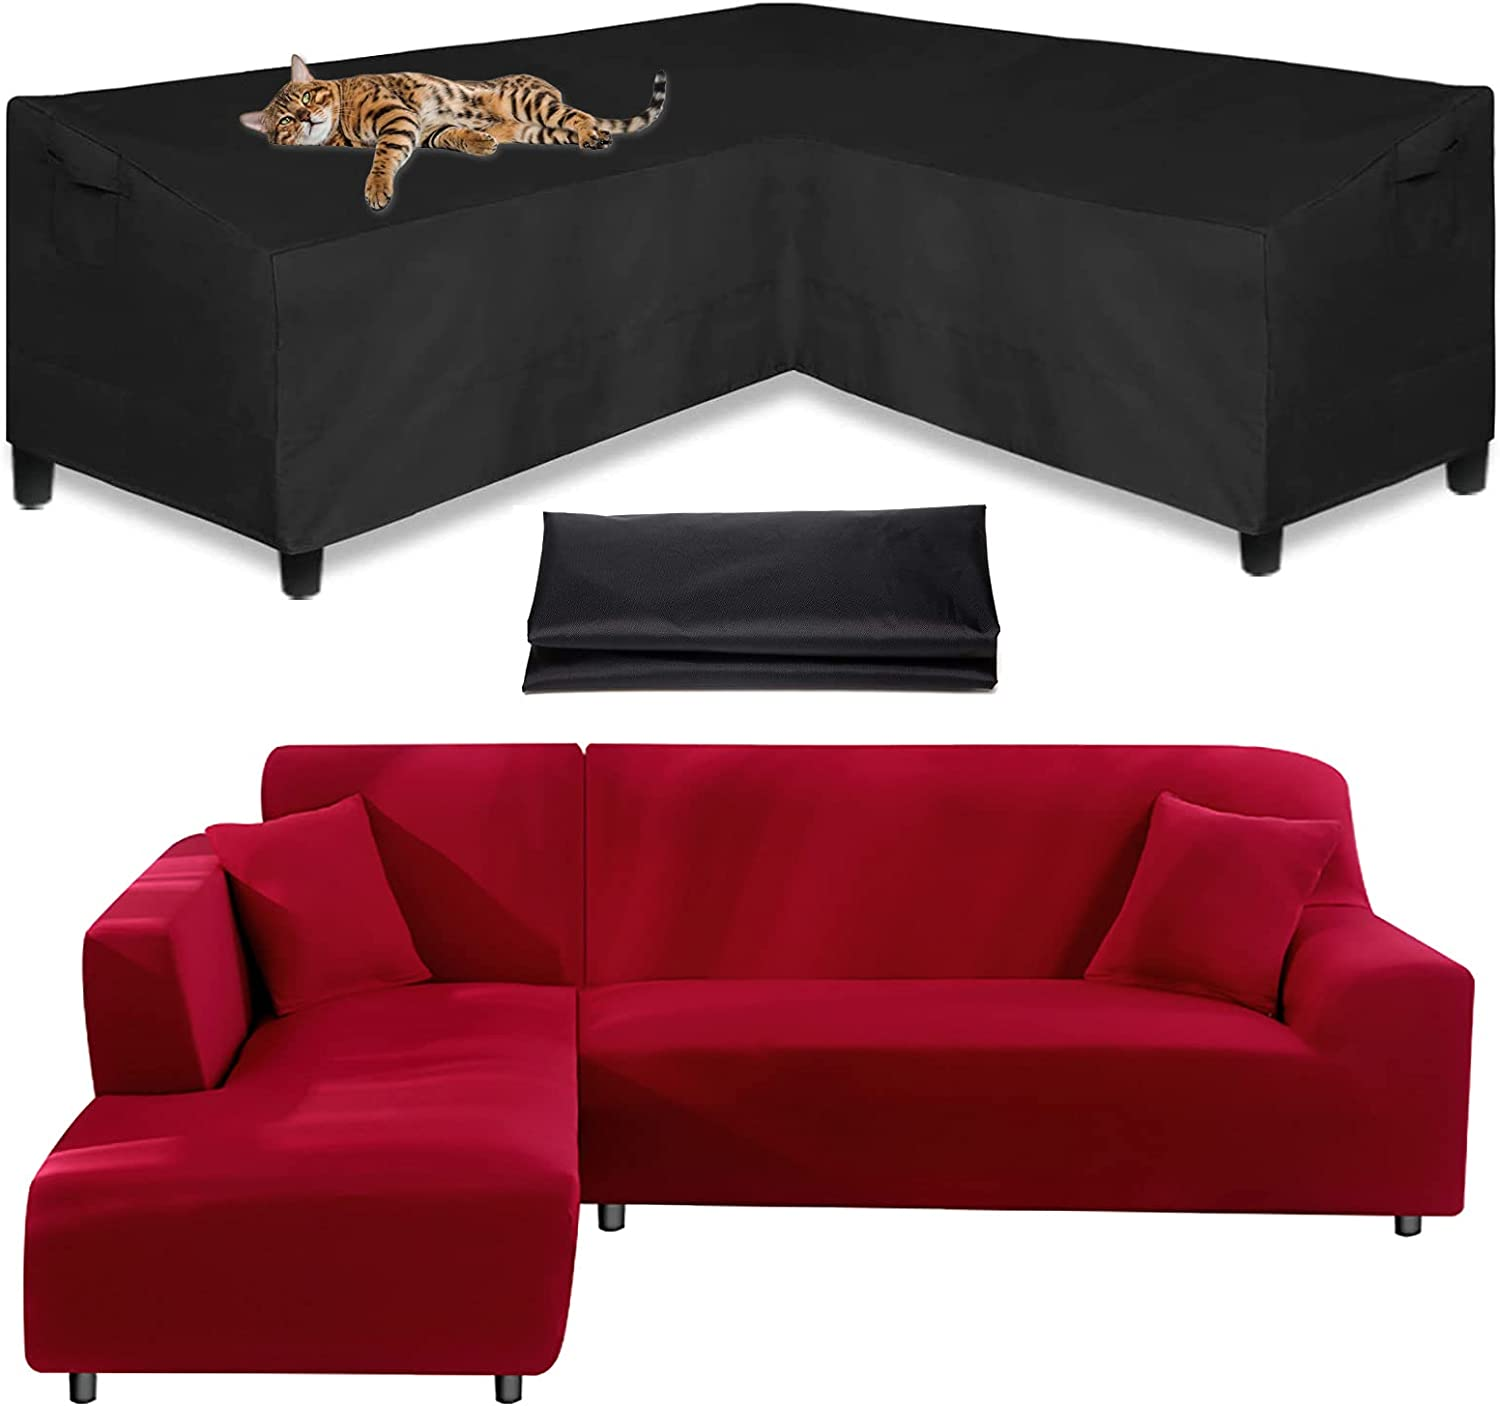 Garden Special Campaign Sofa Cover L Shape Patio Corner Product Furnitur Water-Resistant